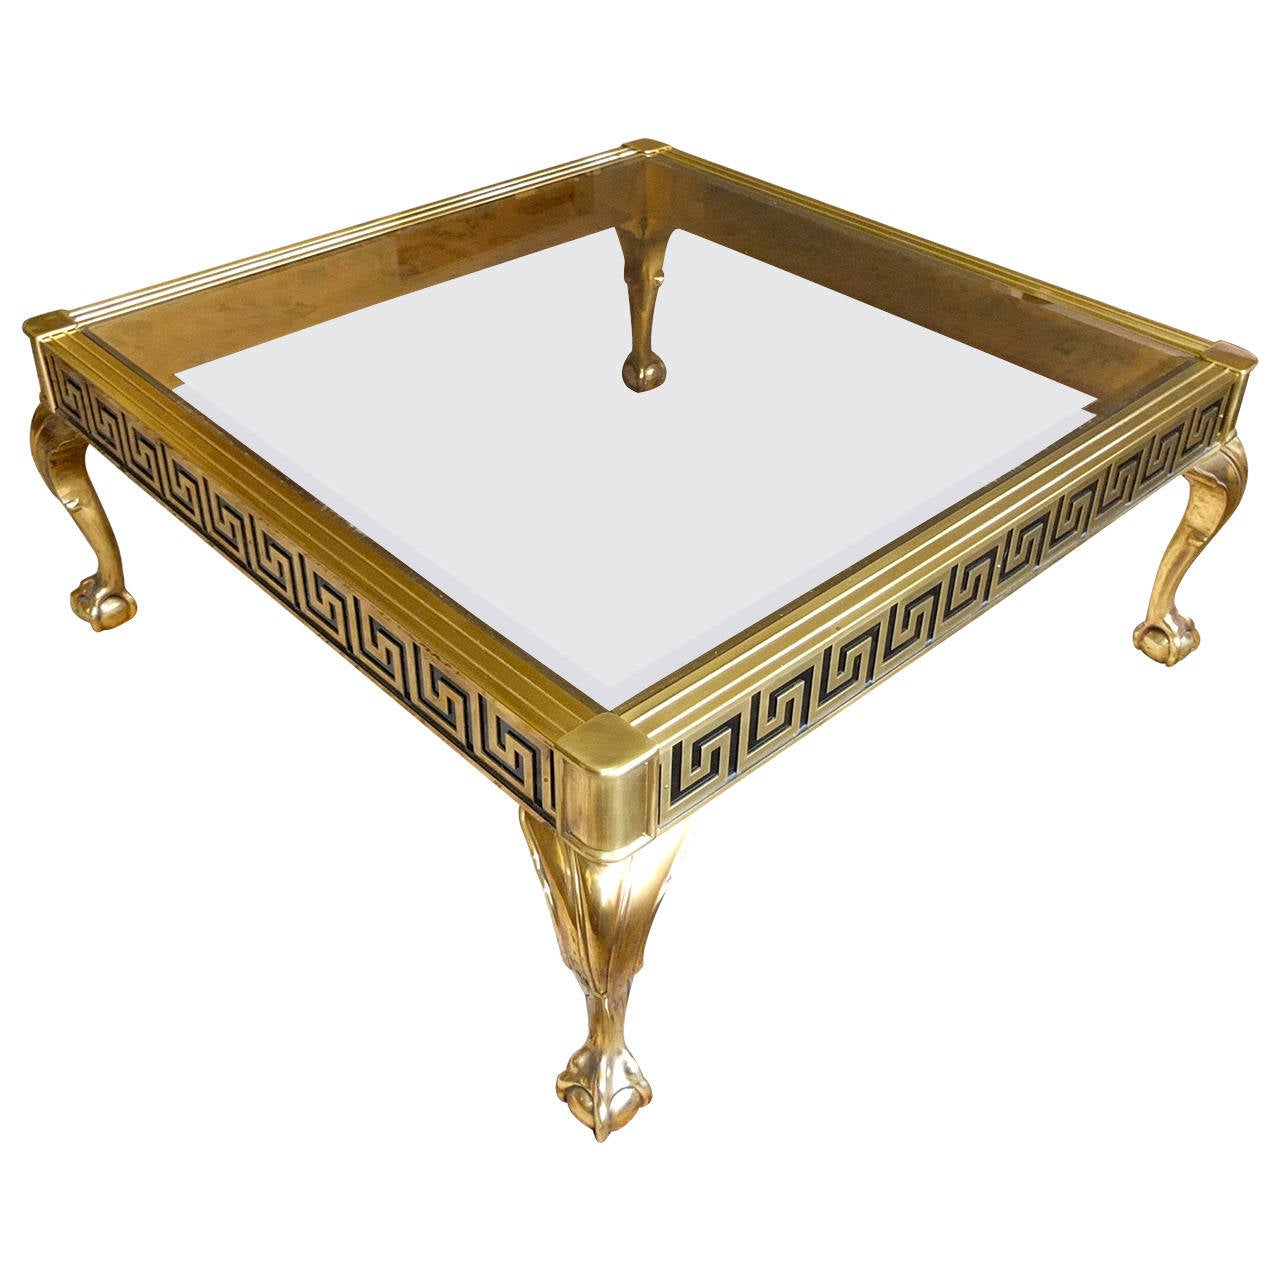 Solid Brass And Tinted Glass Square Cocktail Table At 1stdibs